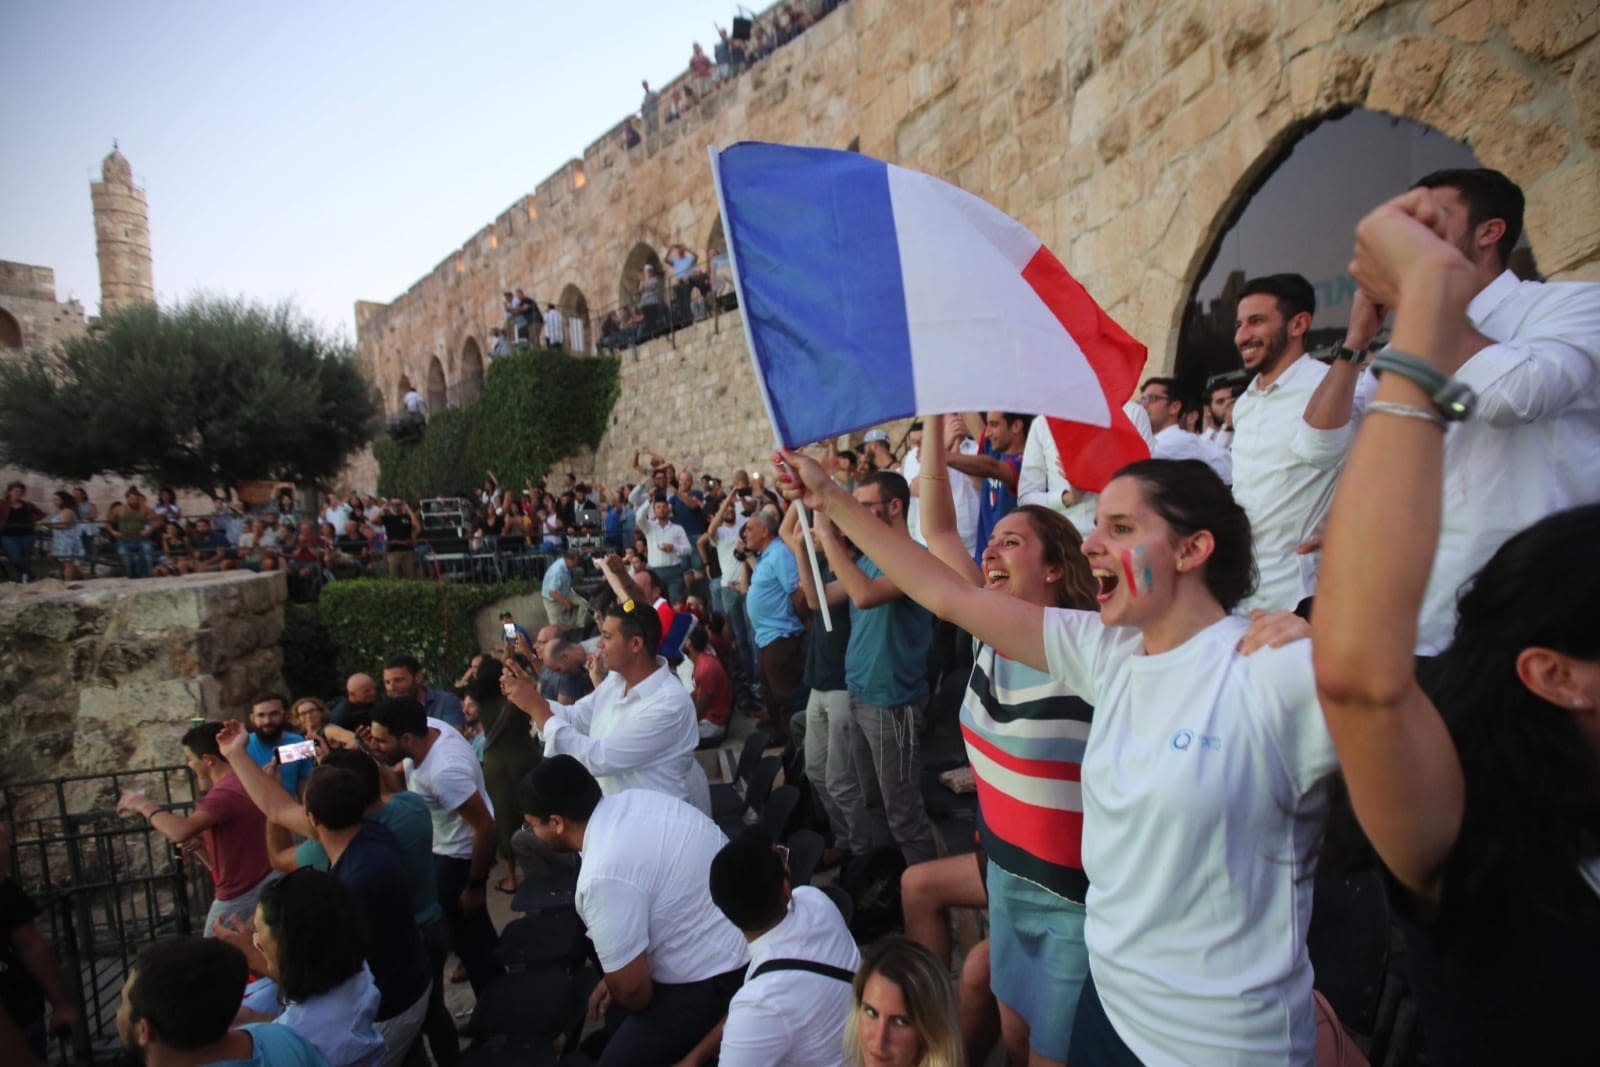 French soccer fans celebrate France's 4 - 2 win over Croatia outside the Old City of Jerusalem (MARC ISRAEL SELLEM)